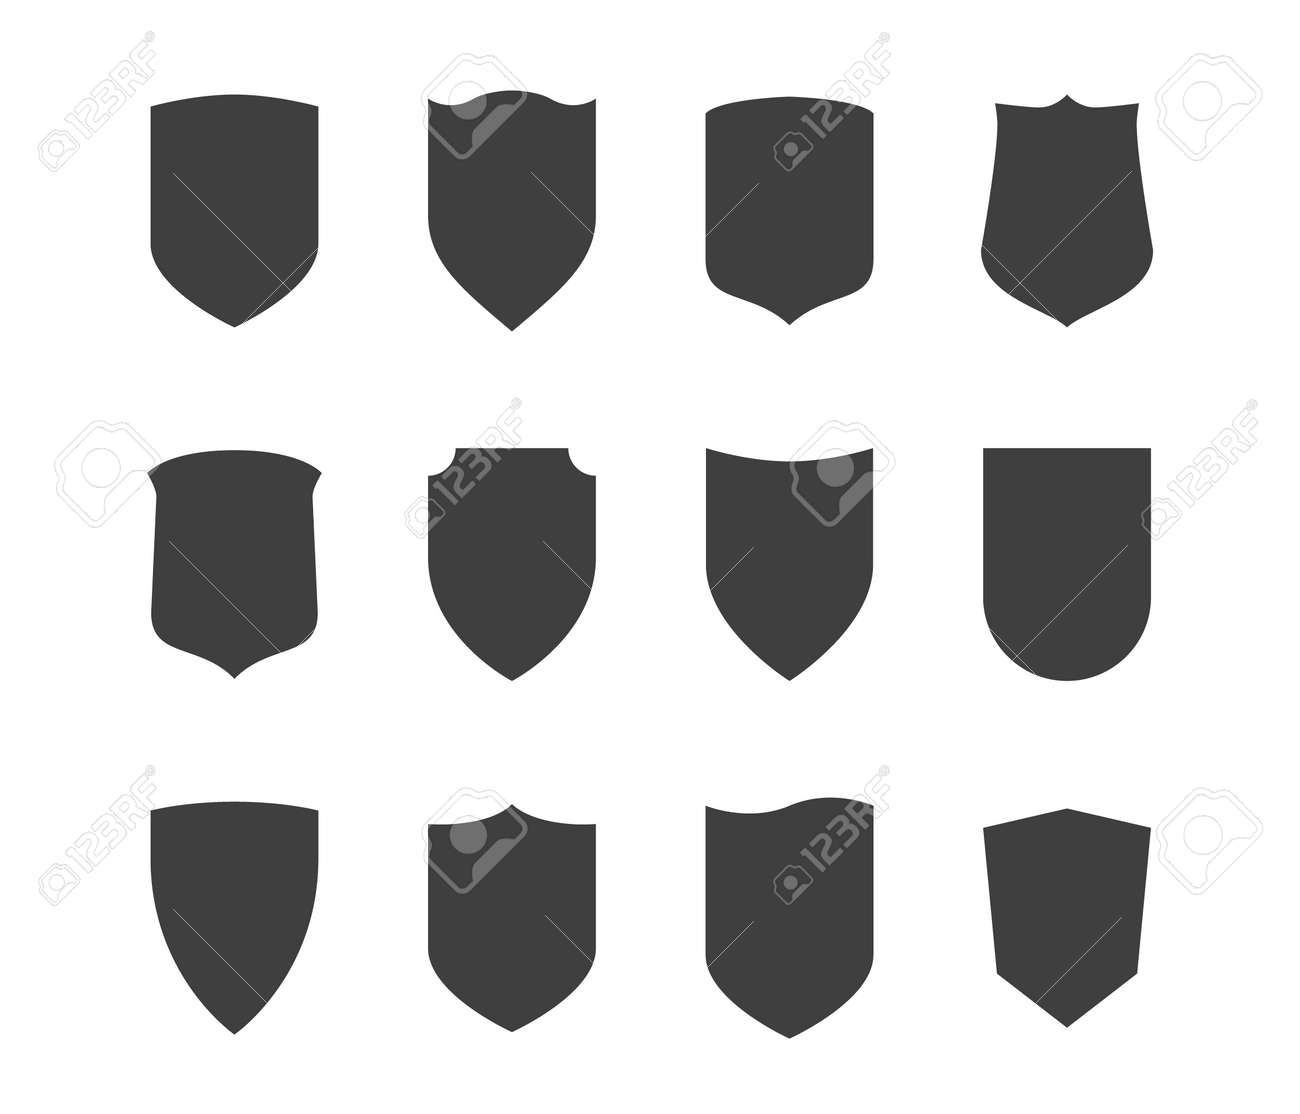 Shield icons set. Protection vector symbol. Black on white background. - 155585525